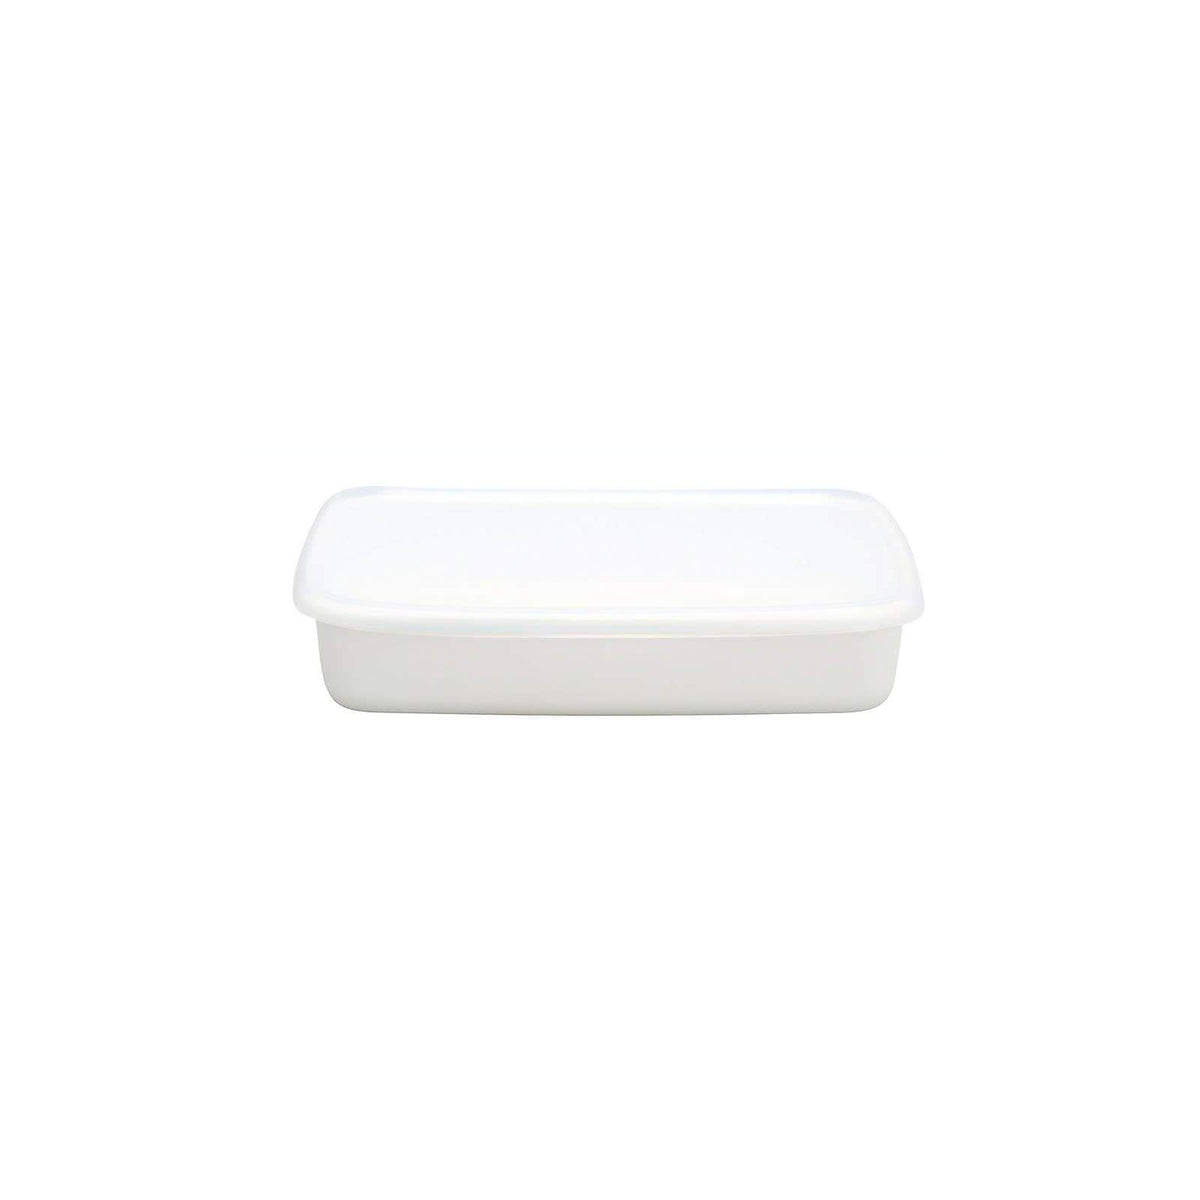 Noda Horo White Series Enamel Rectangle Shallow Food Containers with Lid (3 Sizes) Medium Food Containers